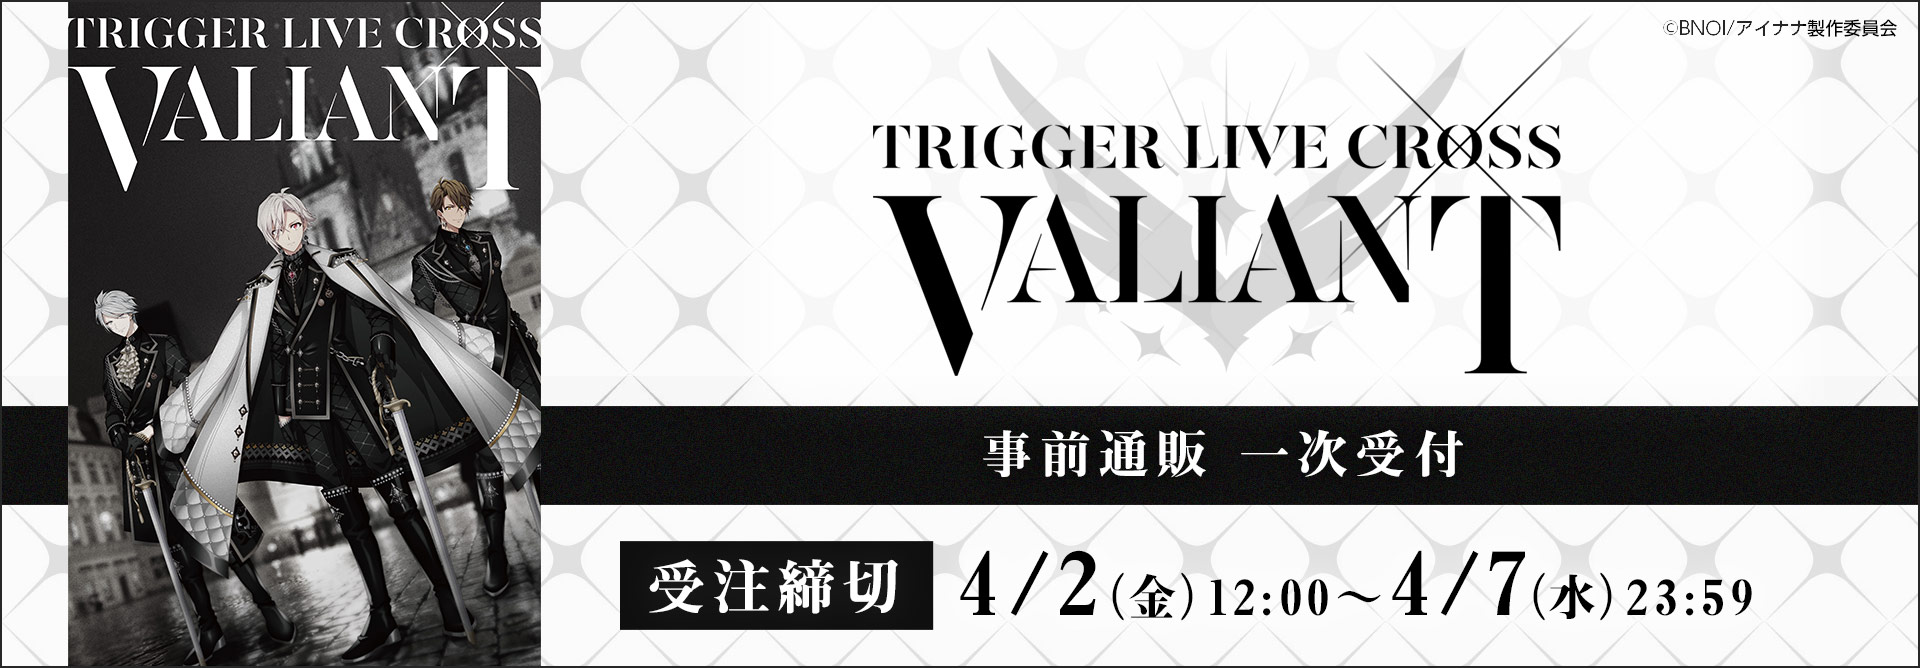 TRIGGER LIVE CROSS VALIANT 事前通販 一次受付